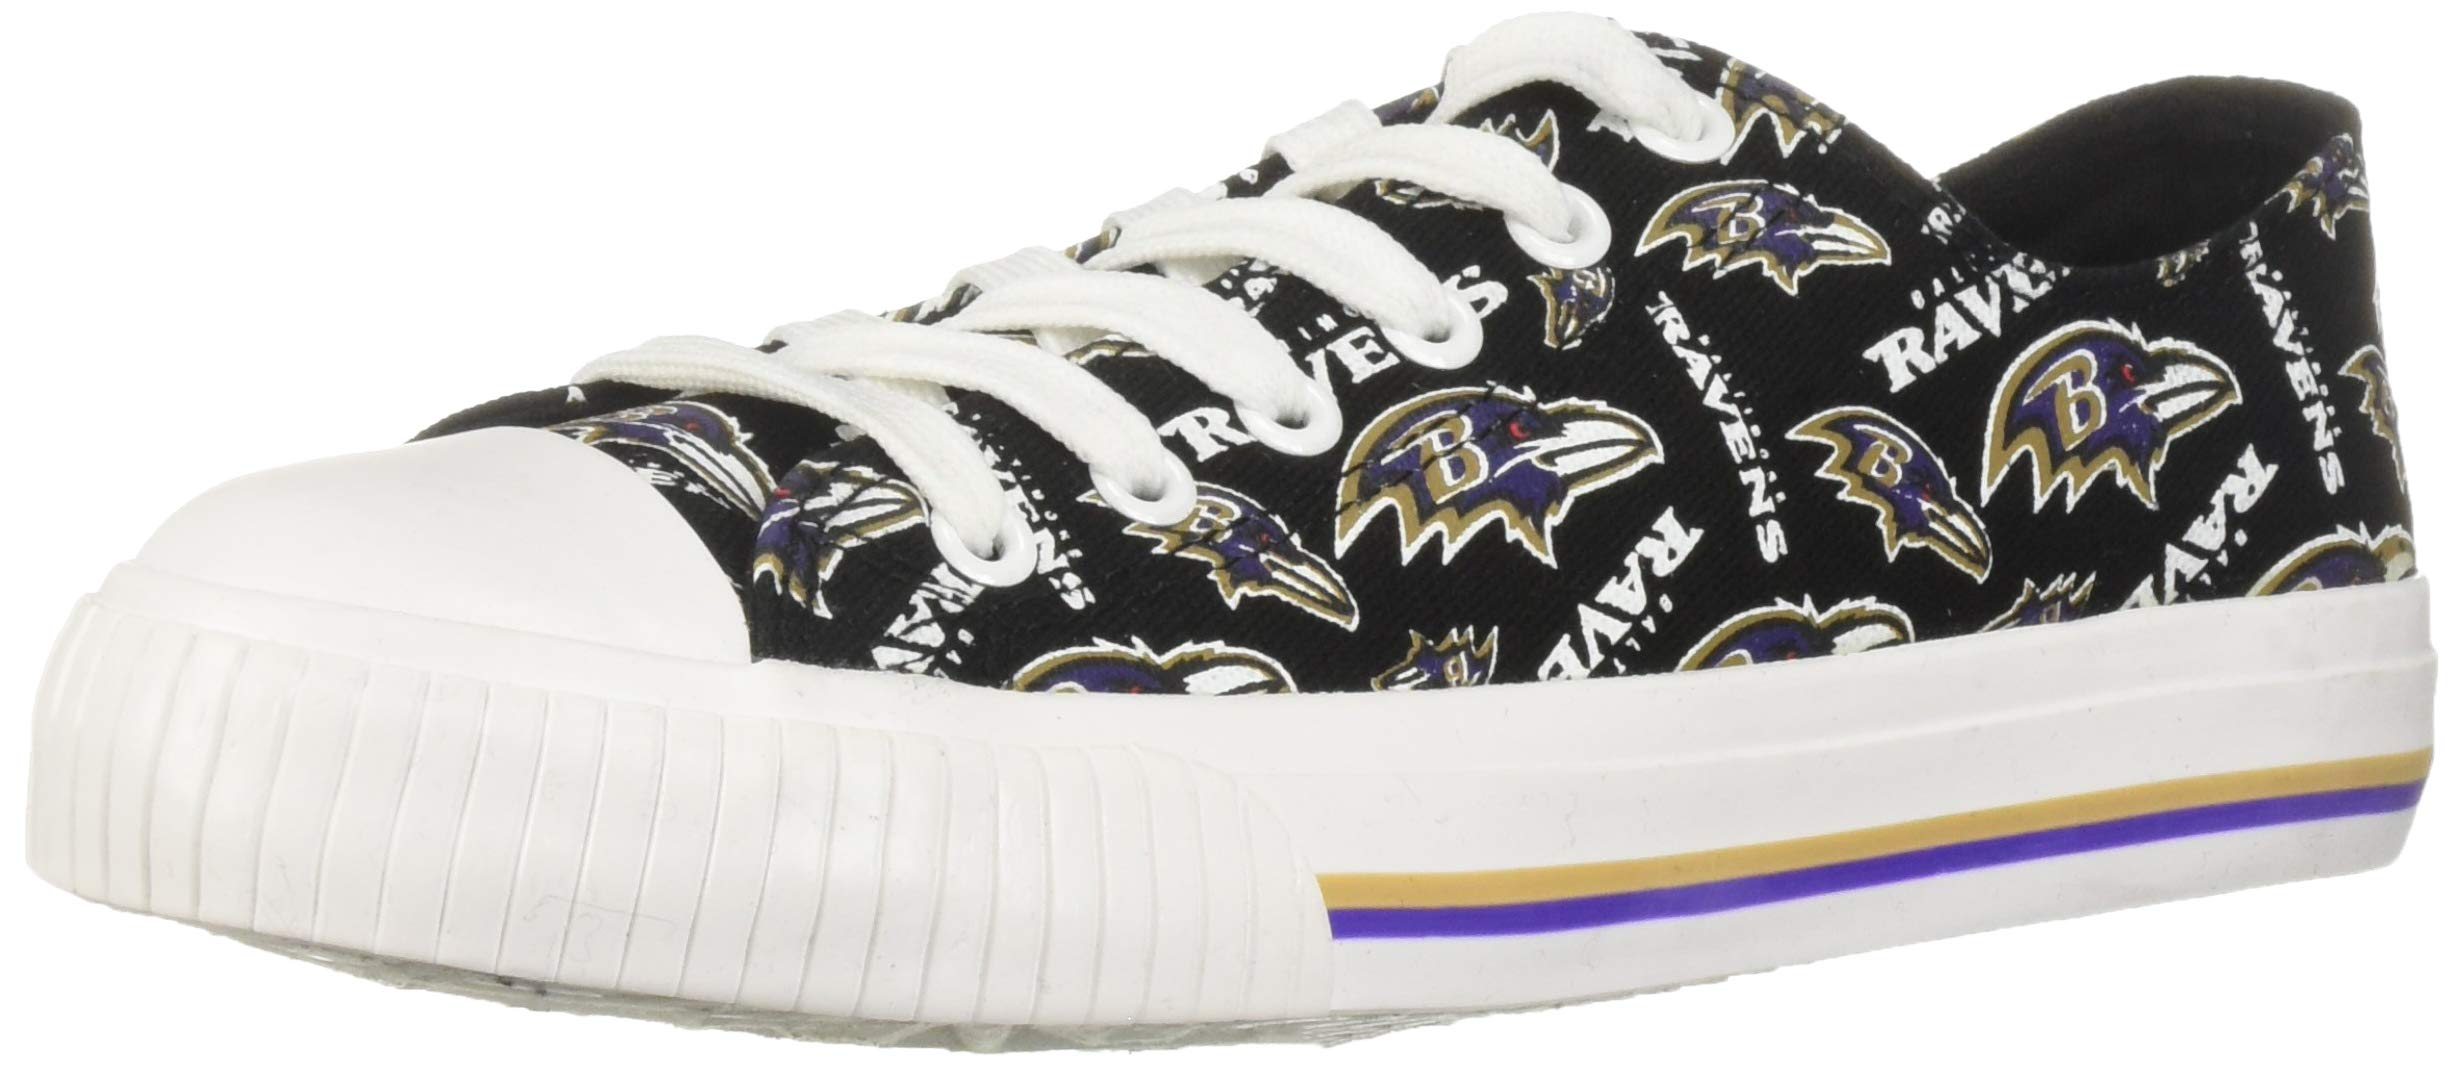 FOCO NFL Womens Low Top Repeat Print Canvas Shoe: Baltimore Ravens, Small